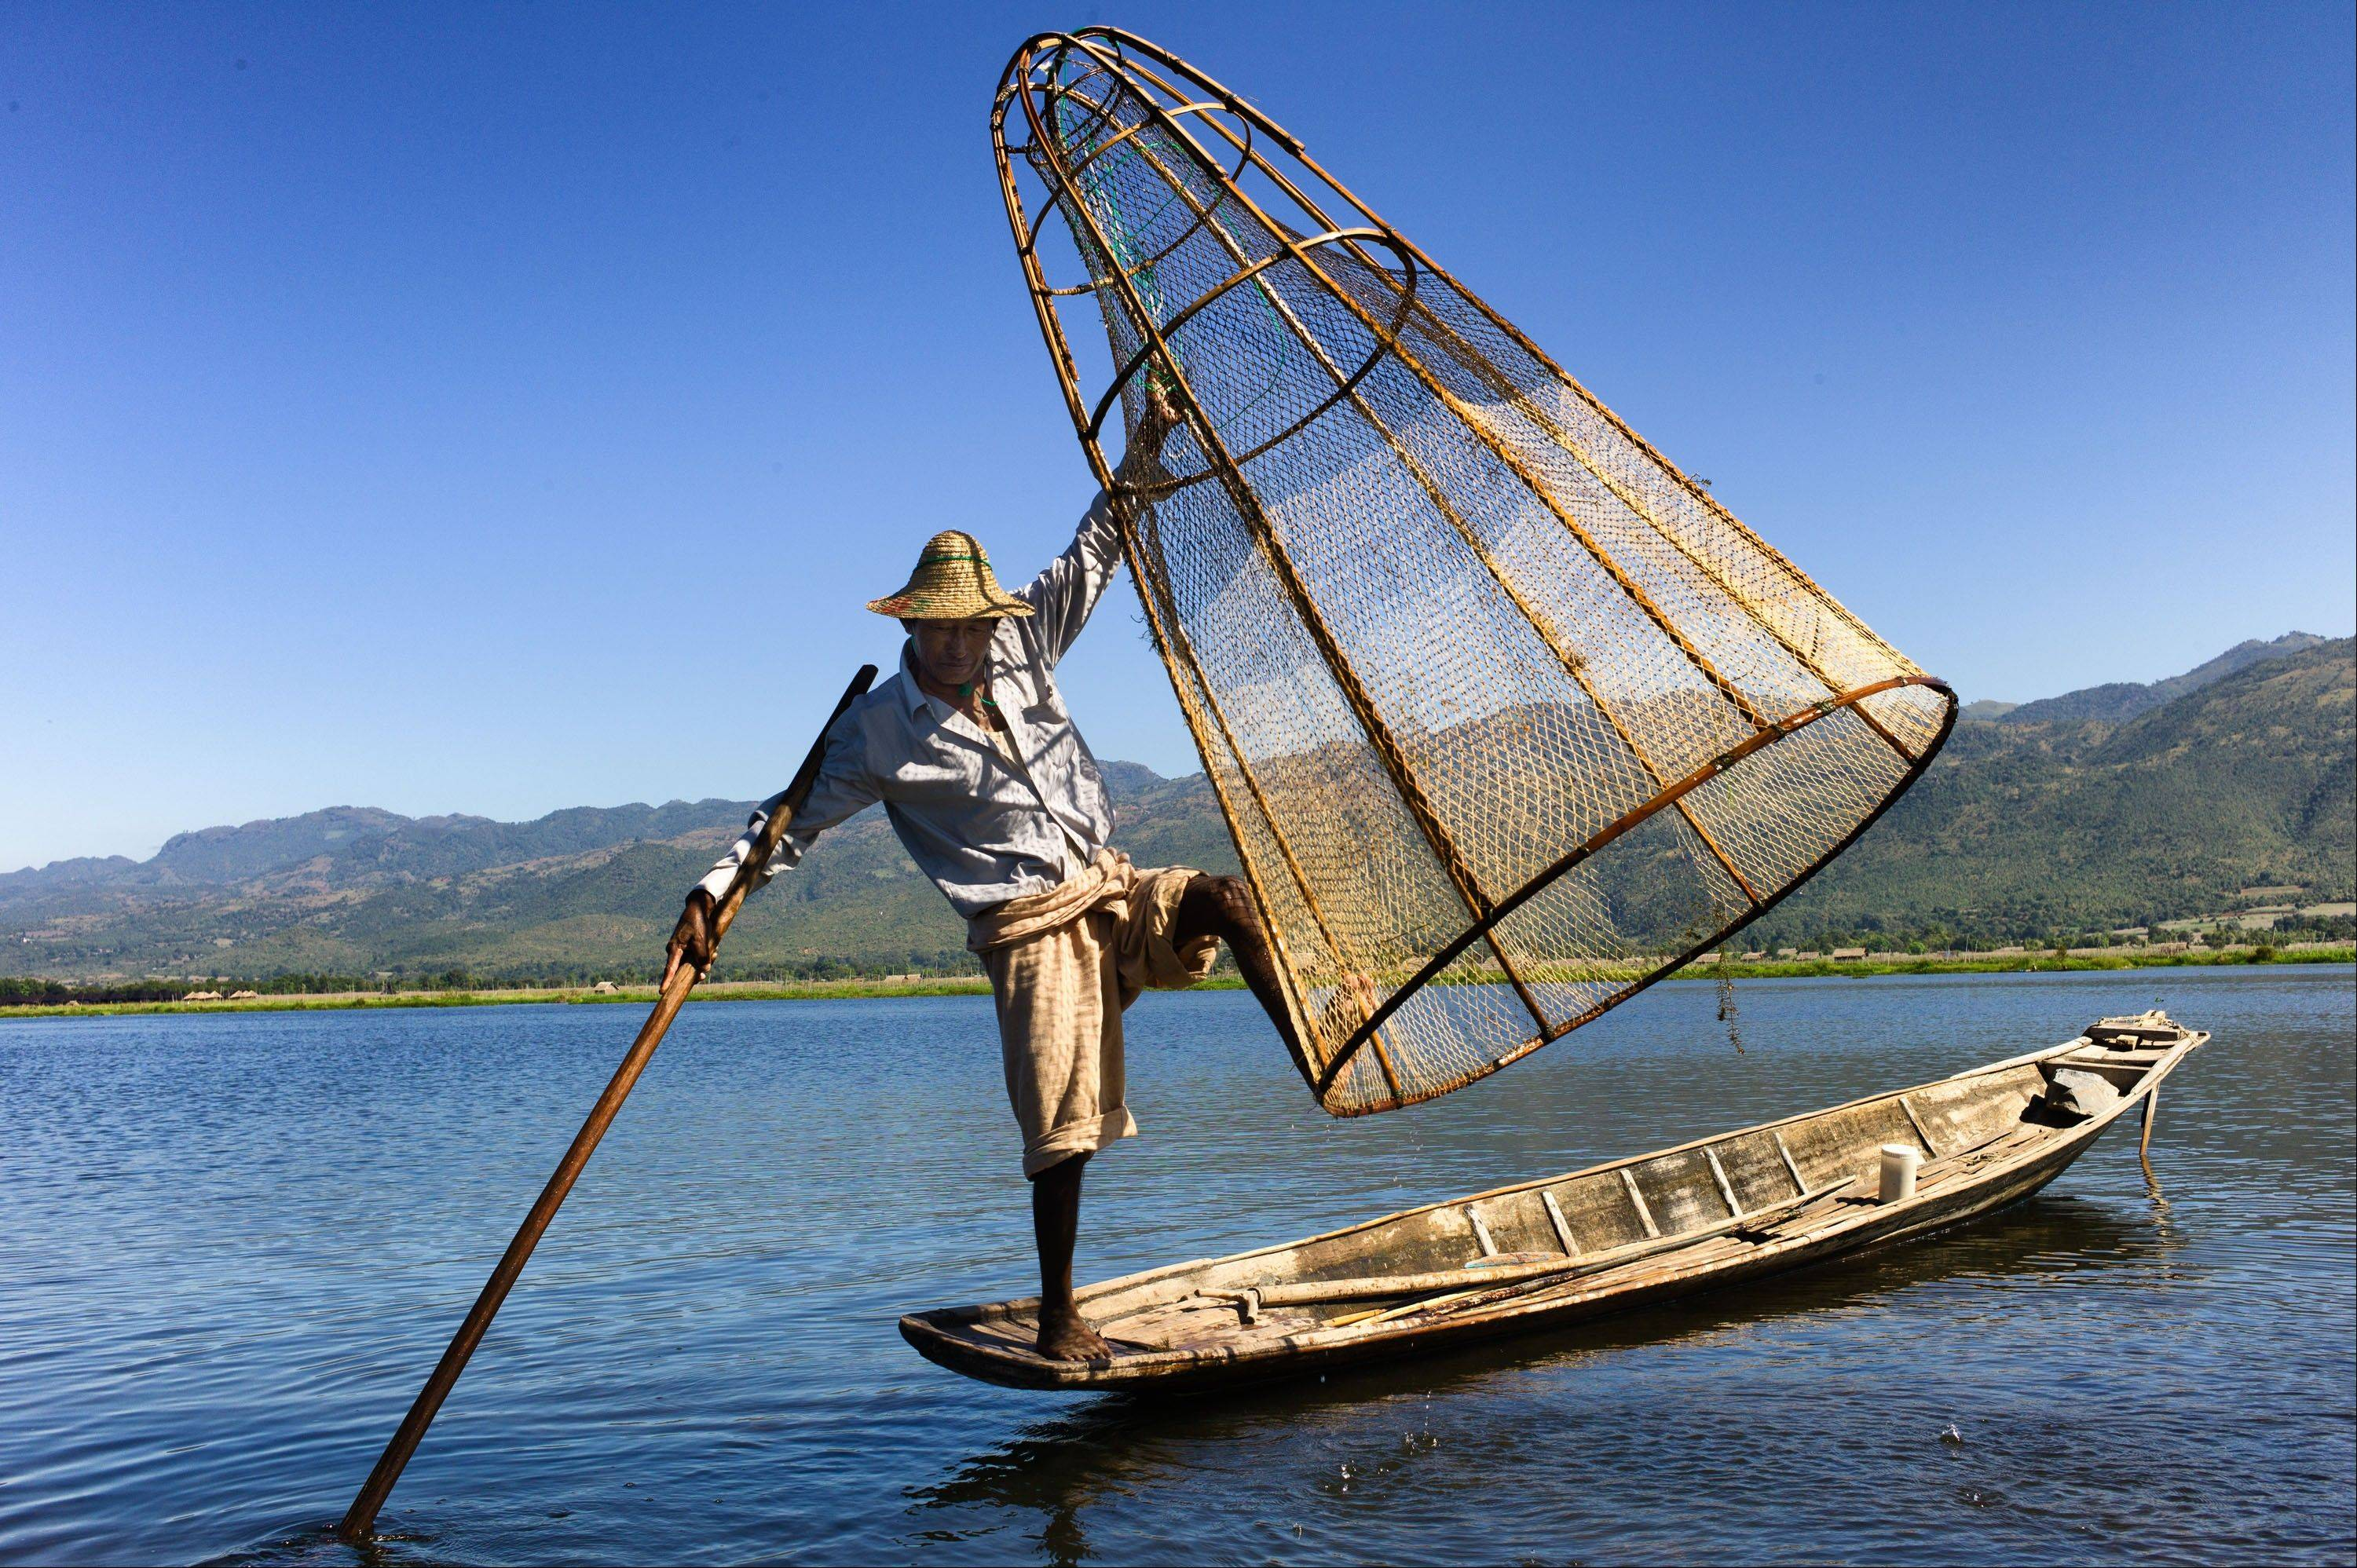 A fisherman balances his boat, net and oar in Inle Lake, a picturesque area of Myanmar that is popular with tourists.